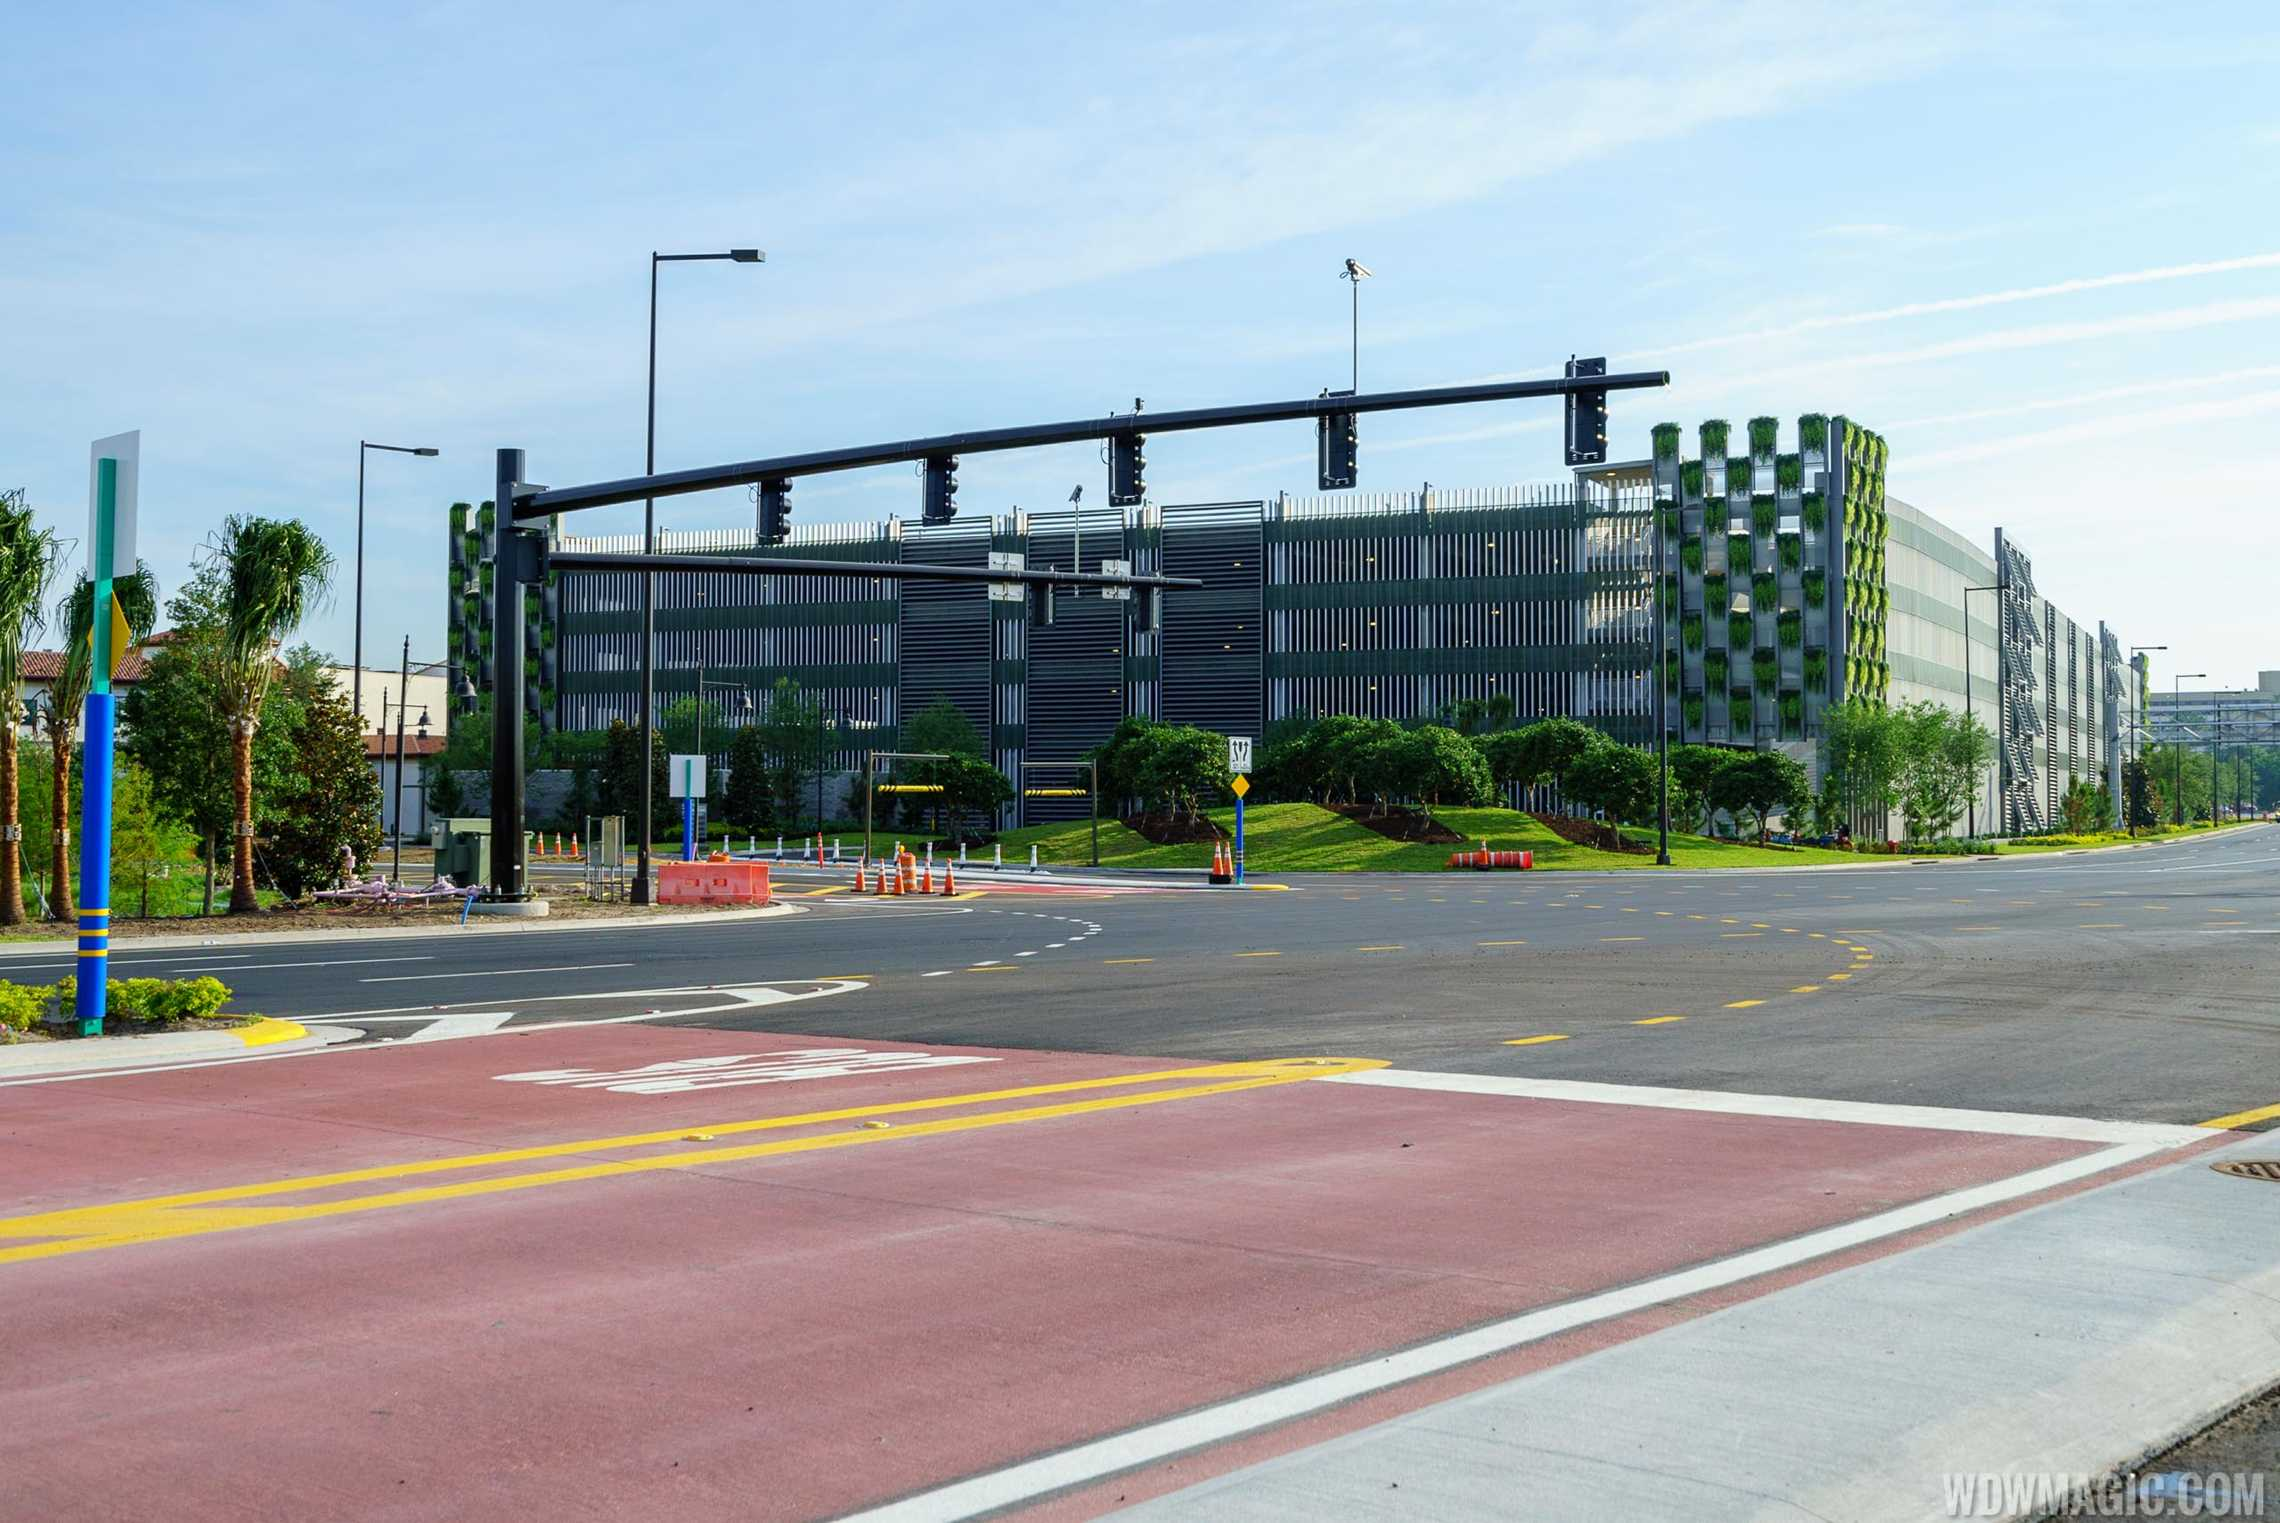 Lime Garage viewed from Buena Vista Drive